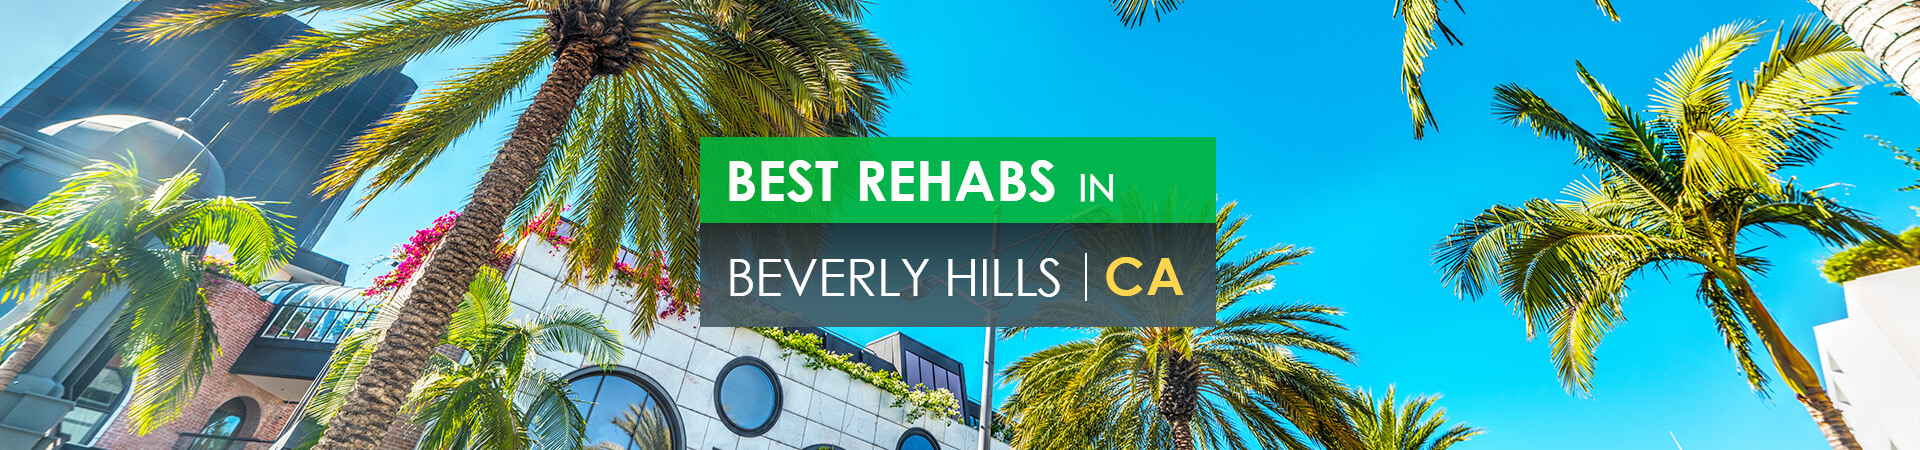 Best rehabs in Beverly Hills, CA